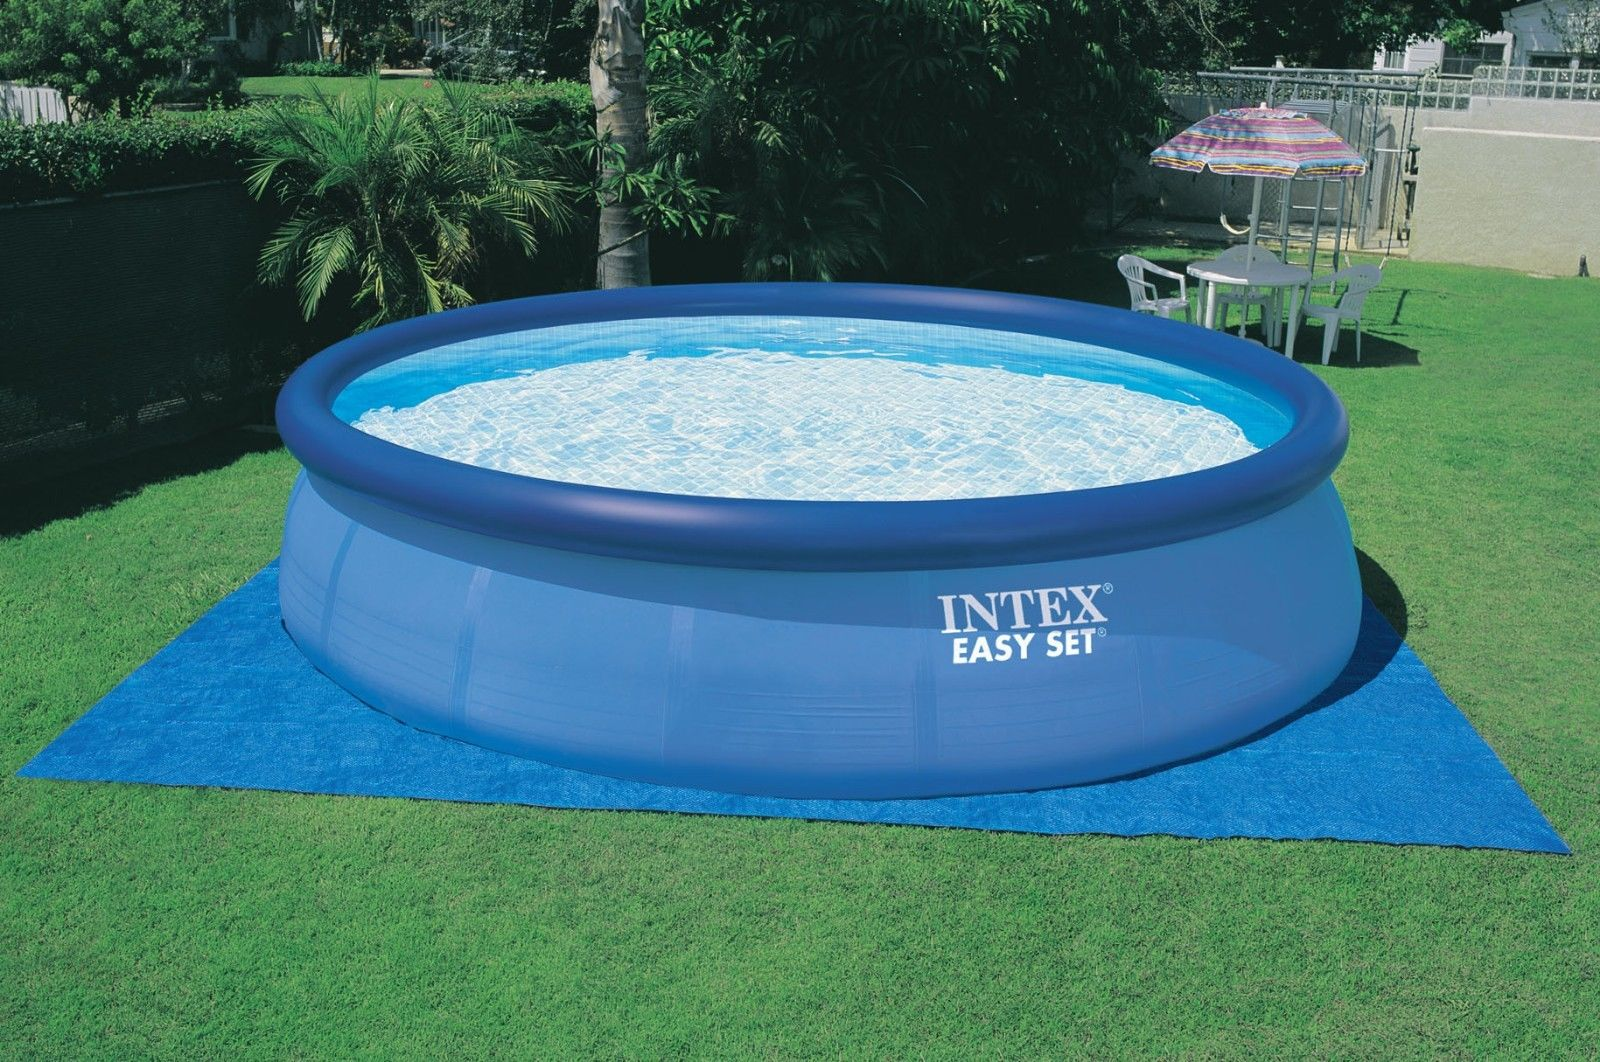 Intex 15 x 42 easy set above ground swimming pool package for Ground swimming pools